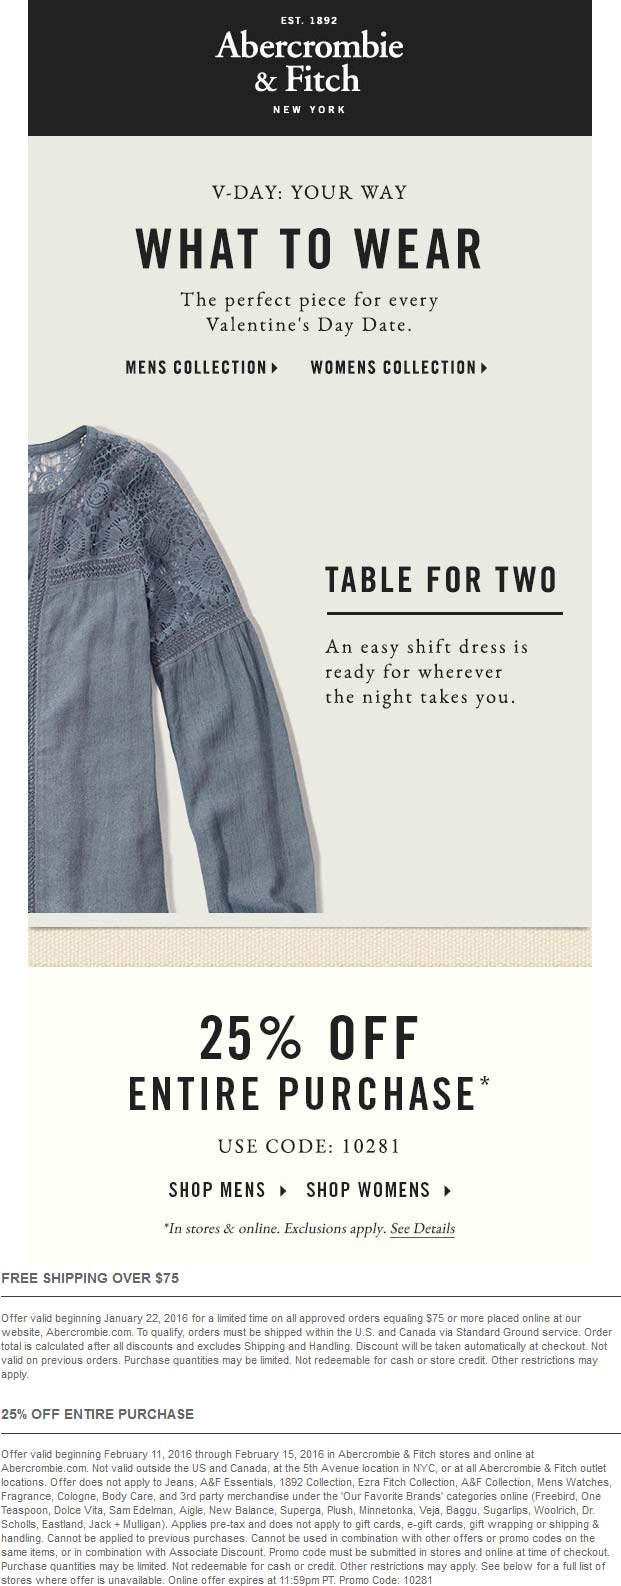 Abercrombie & Fitch Coupon July 2017 25% off at Abercrombie & Fitch, or online via promo code 10281